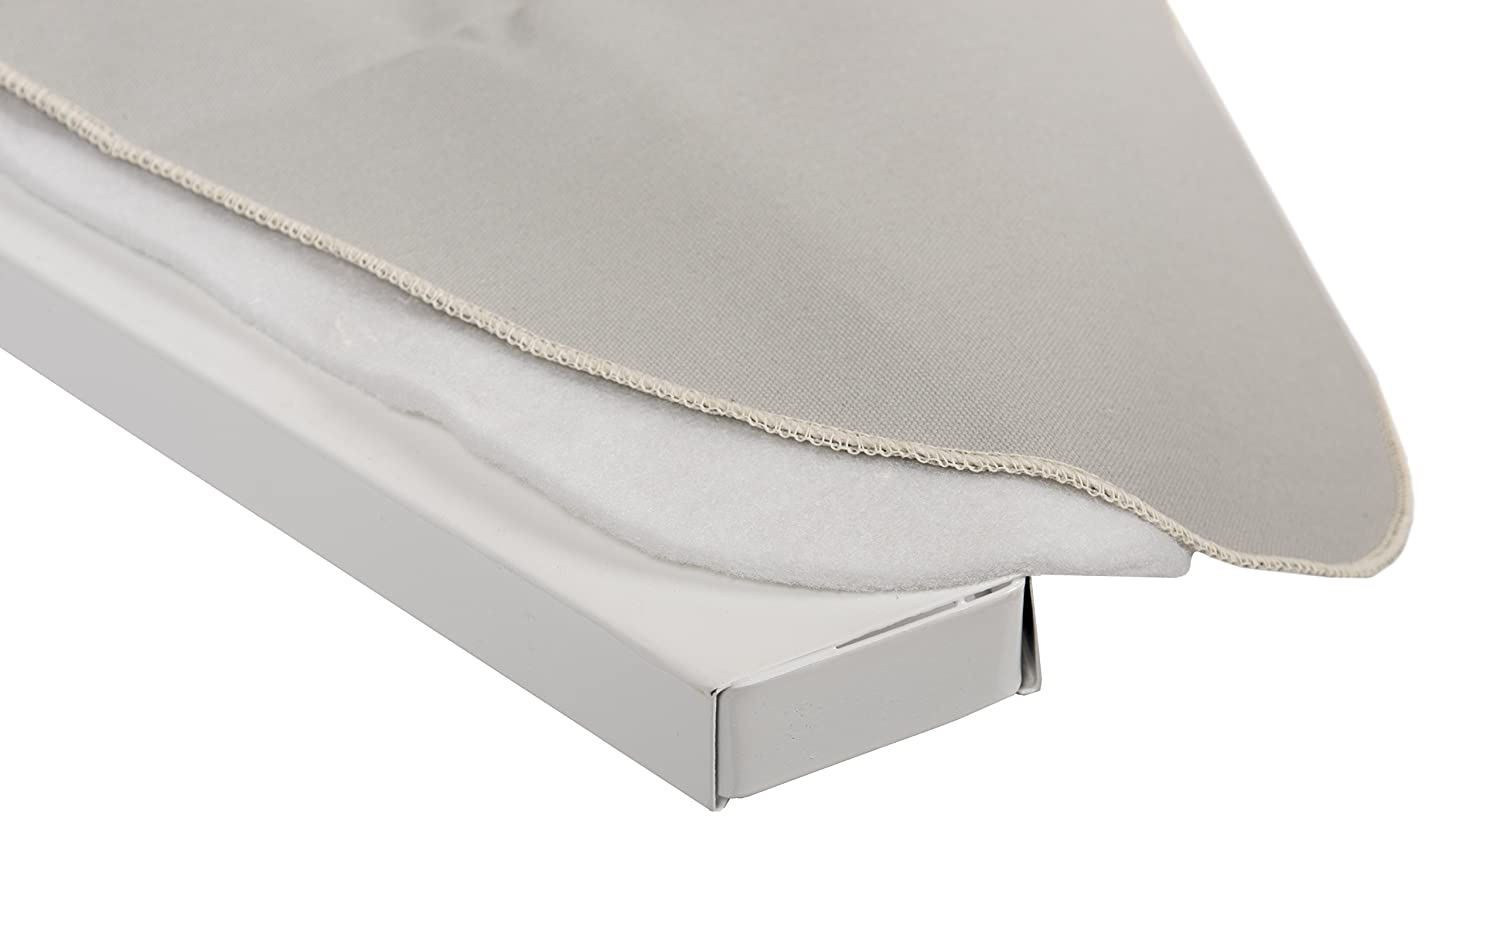 HANDi-PRESS Iron-A-Way Cover/Pad Replacement, Cool Grey 001500